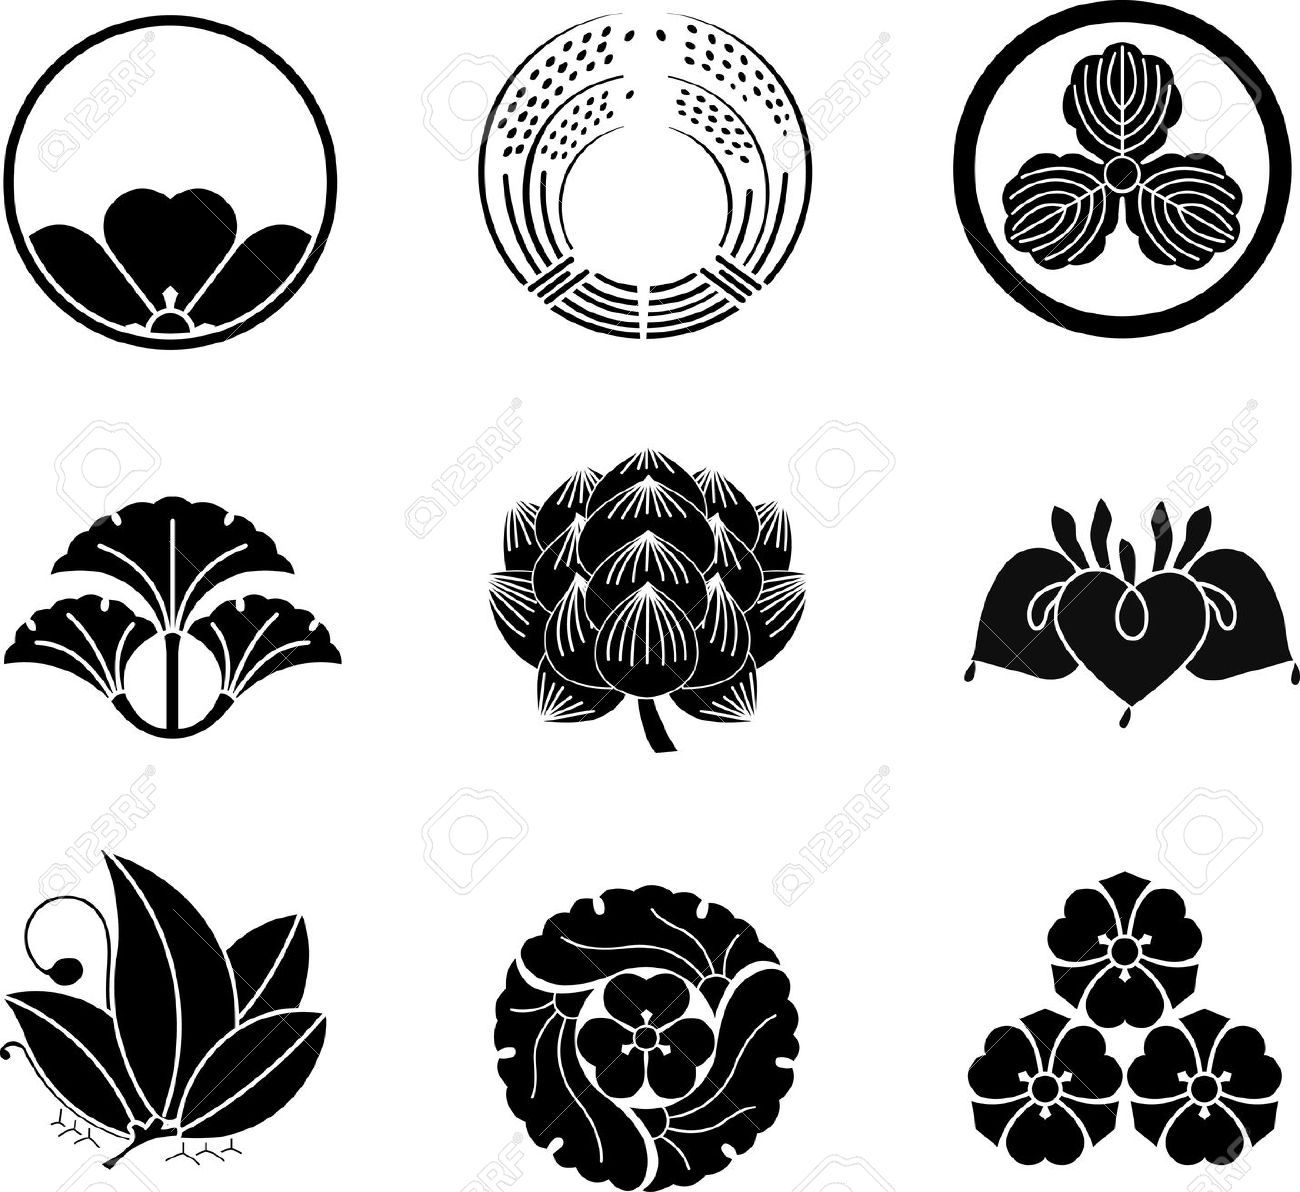 Japanese Lotus Flower Google Search Art Pinterest Lotus